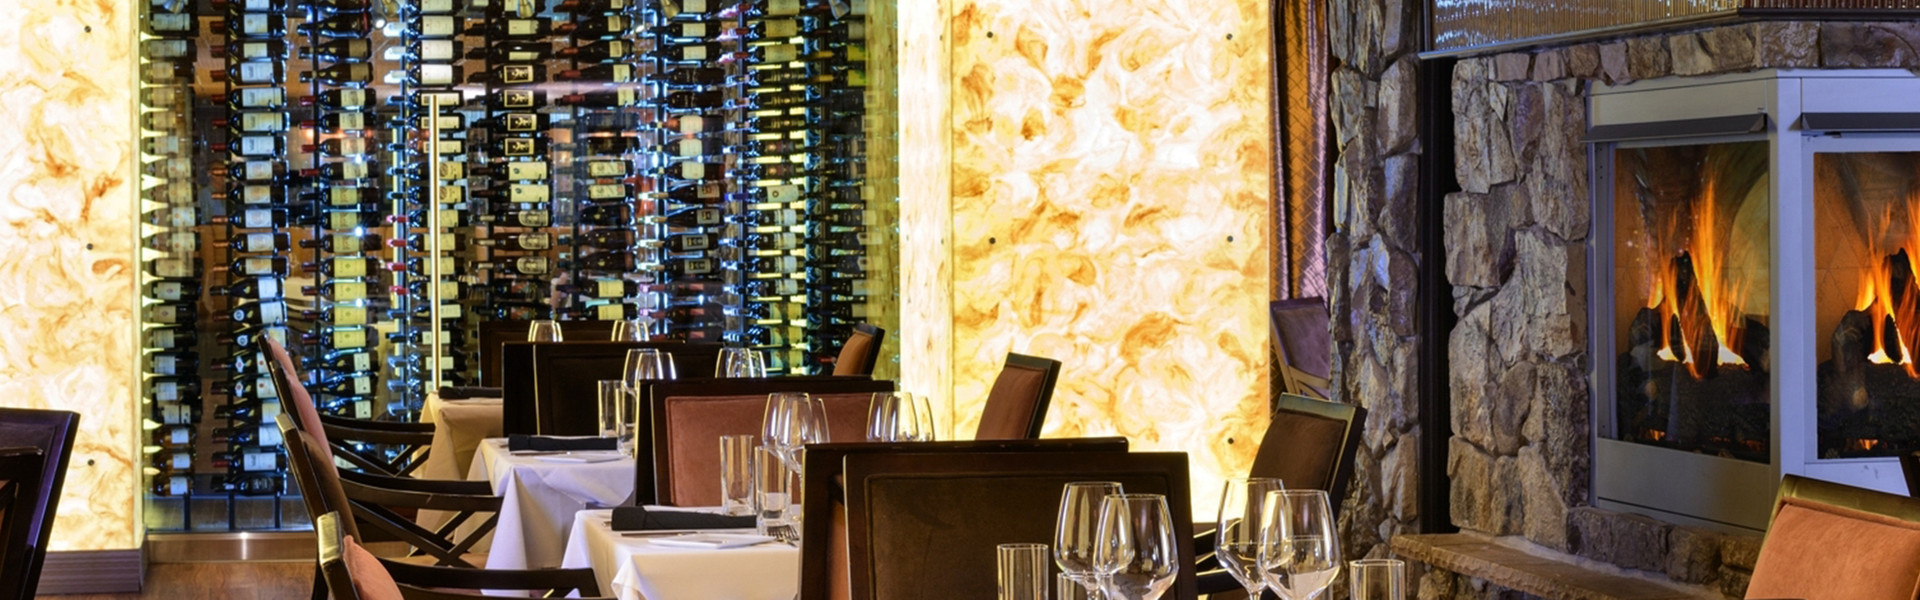 Steakhouse in Park City, Utah | Edge Steakhouse Dining Room